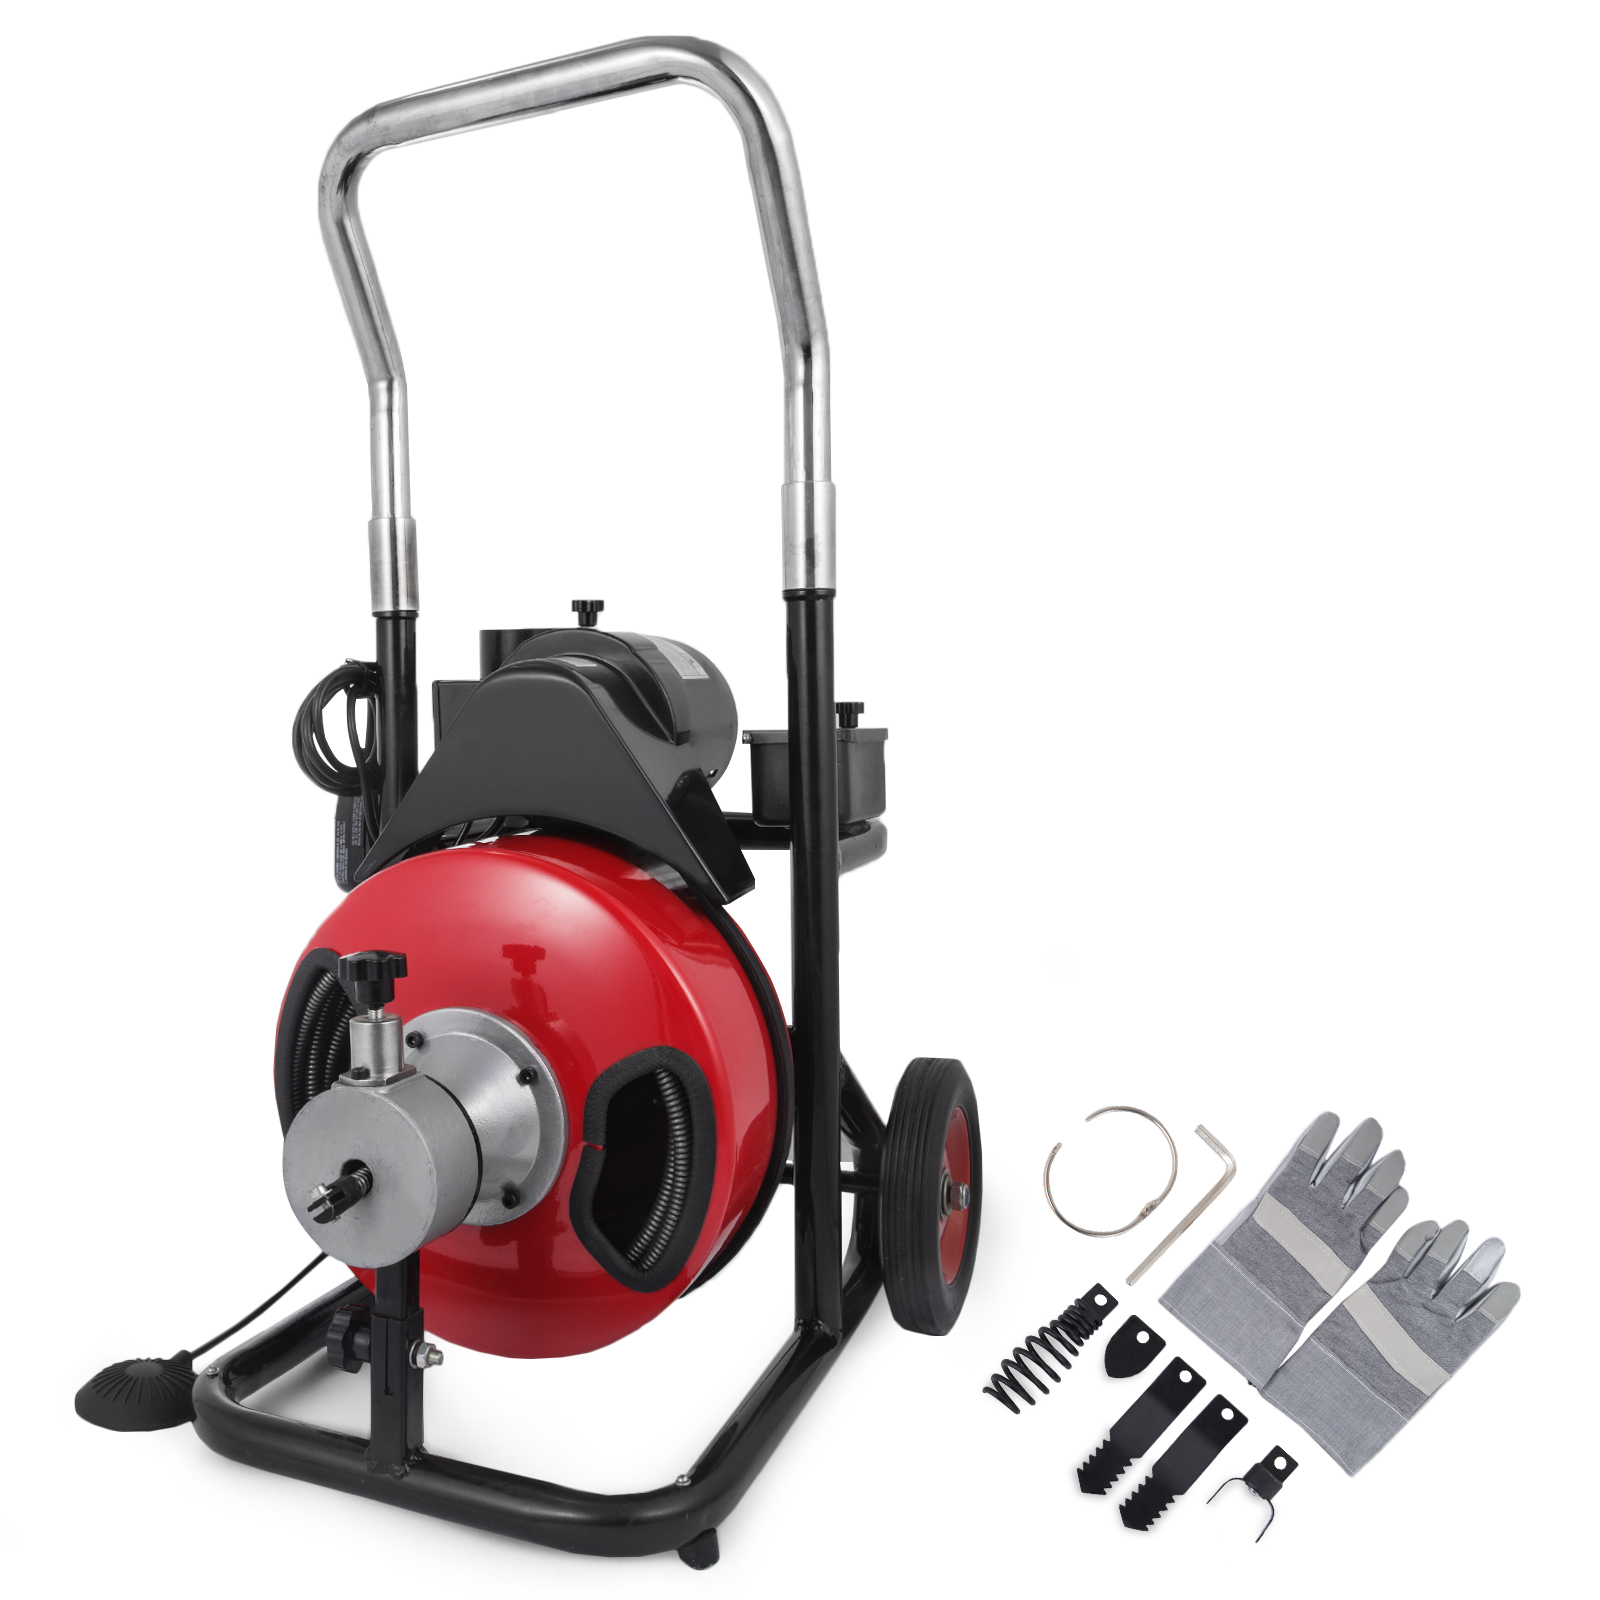 "BestEquip Sewer Snake Drill Drain Auger Cleaner 50 Ft Long 1/2'' Wide Electric Drain Cleaning Machine 4 Cutter & Foot Switch Drain Cleaner Drum Auger Snake for 2"" to 4"" Pipes"